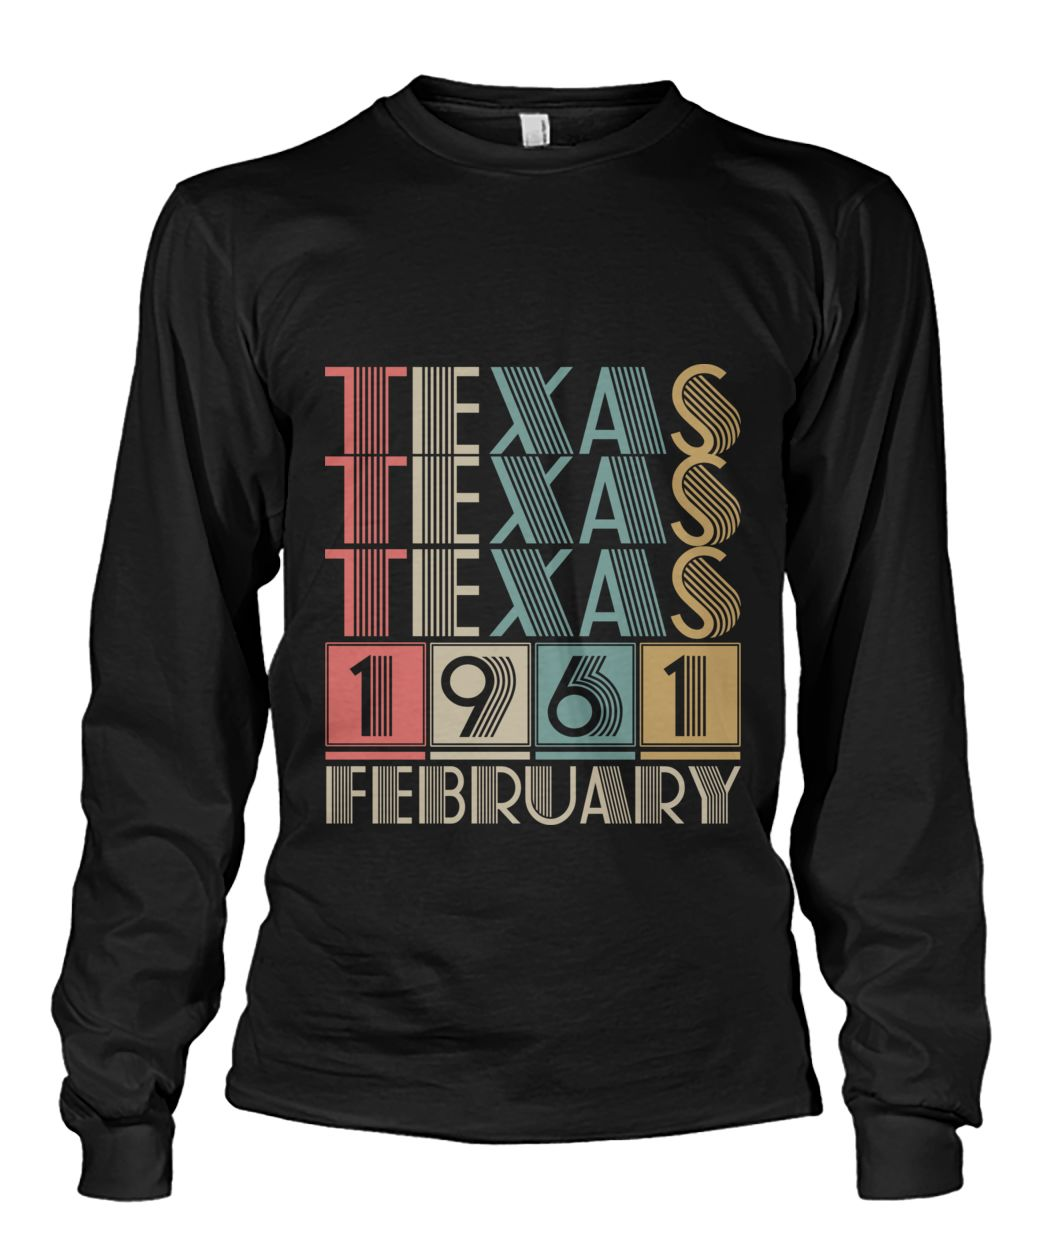 Born in Texas in February 1961 t shirt-Short Sleeves - TEEHOT.COM